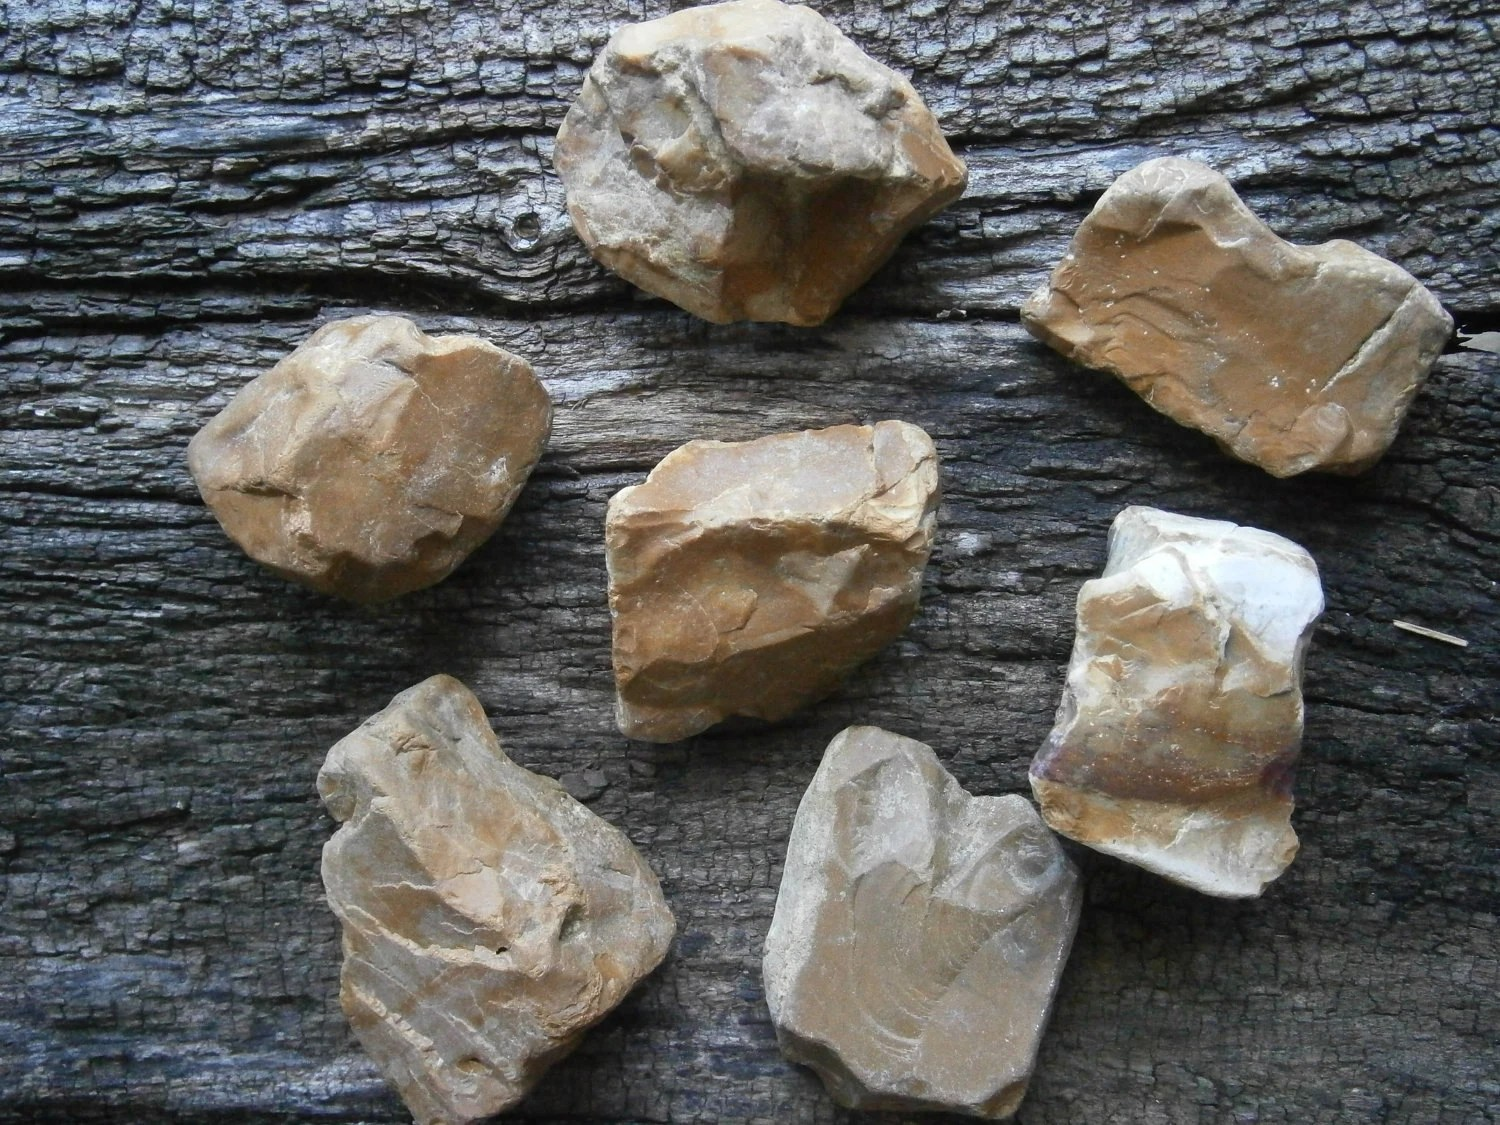 Where Can You Buy River Rocks